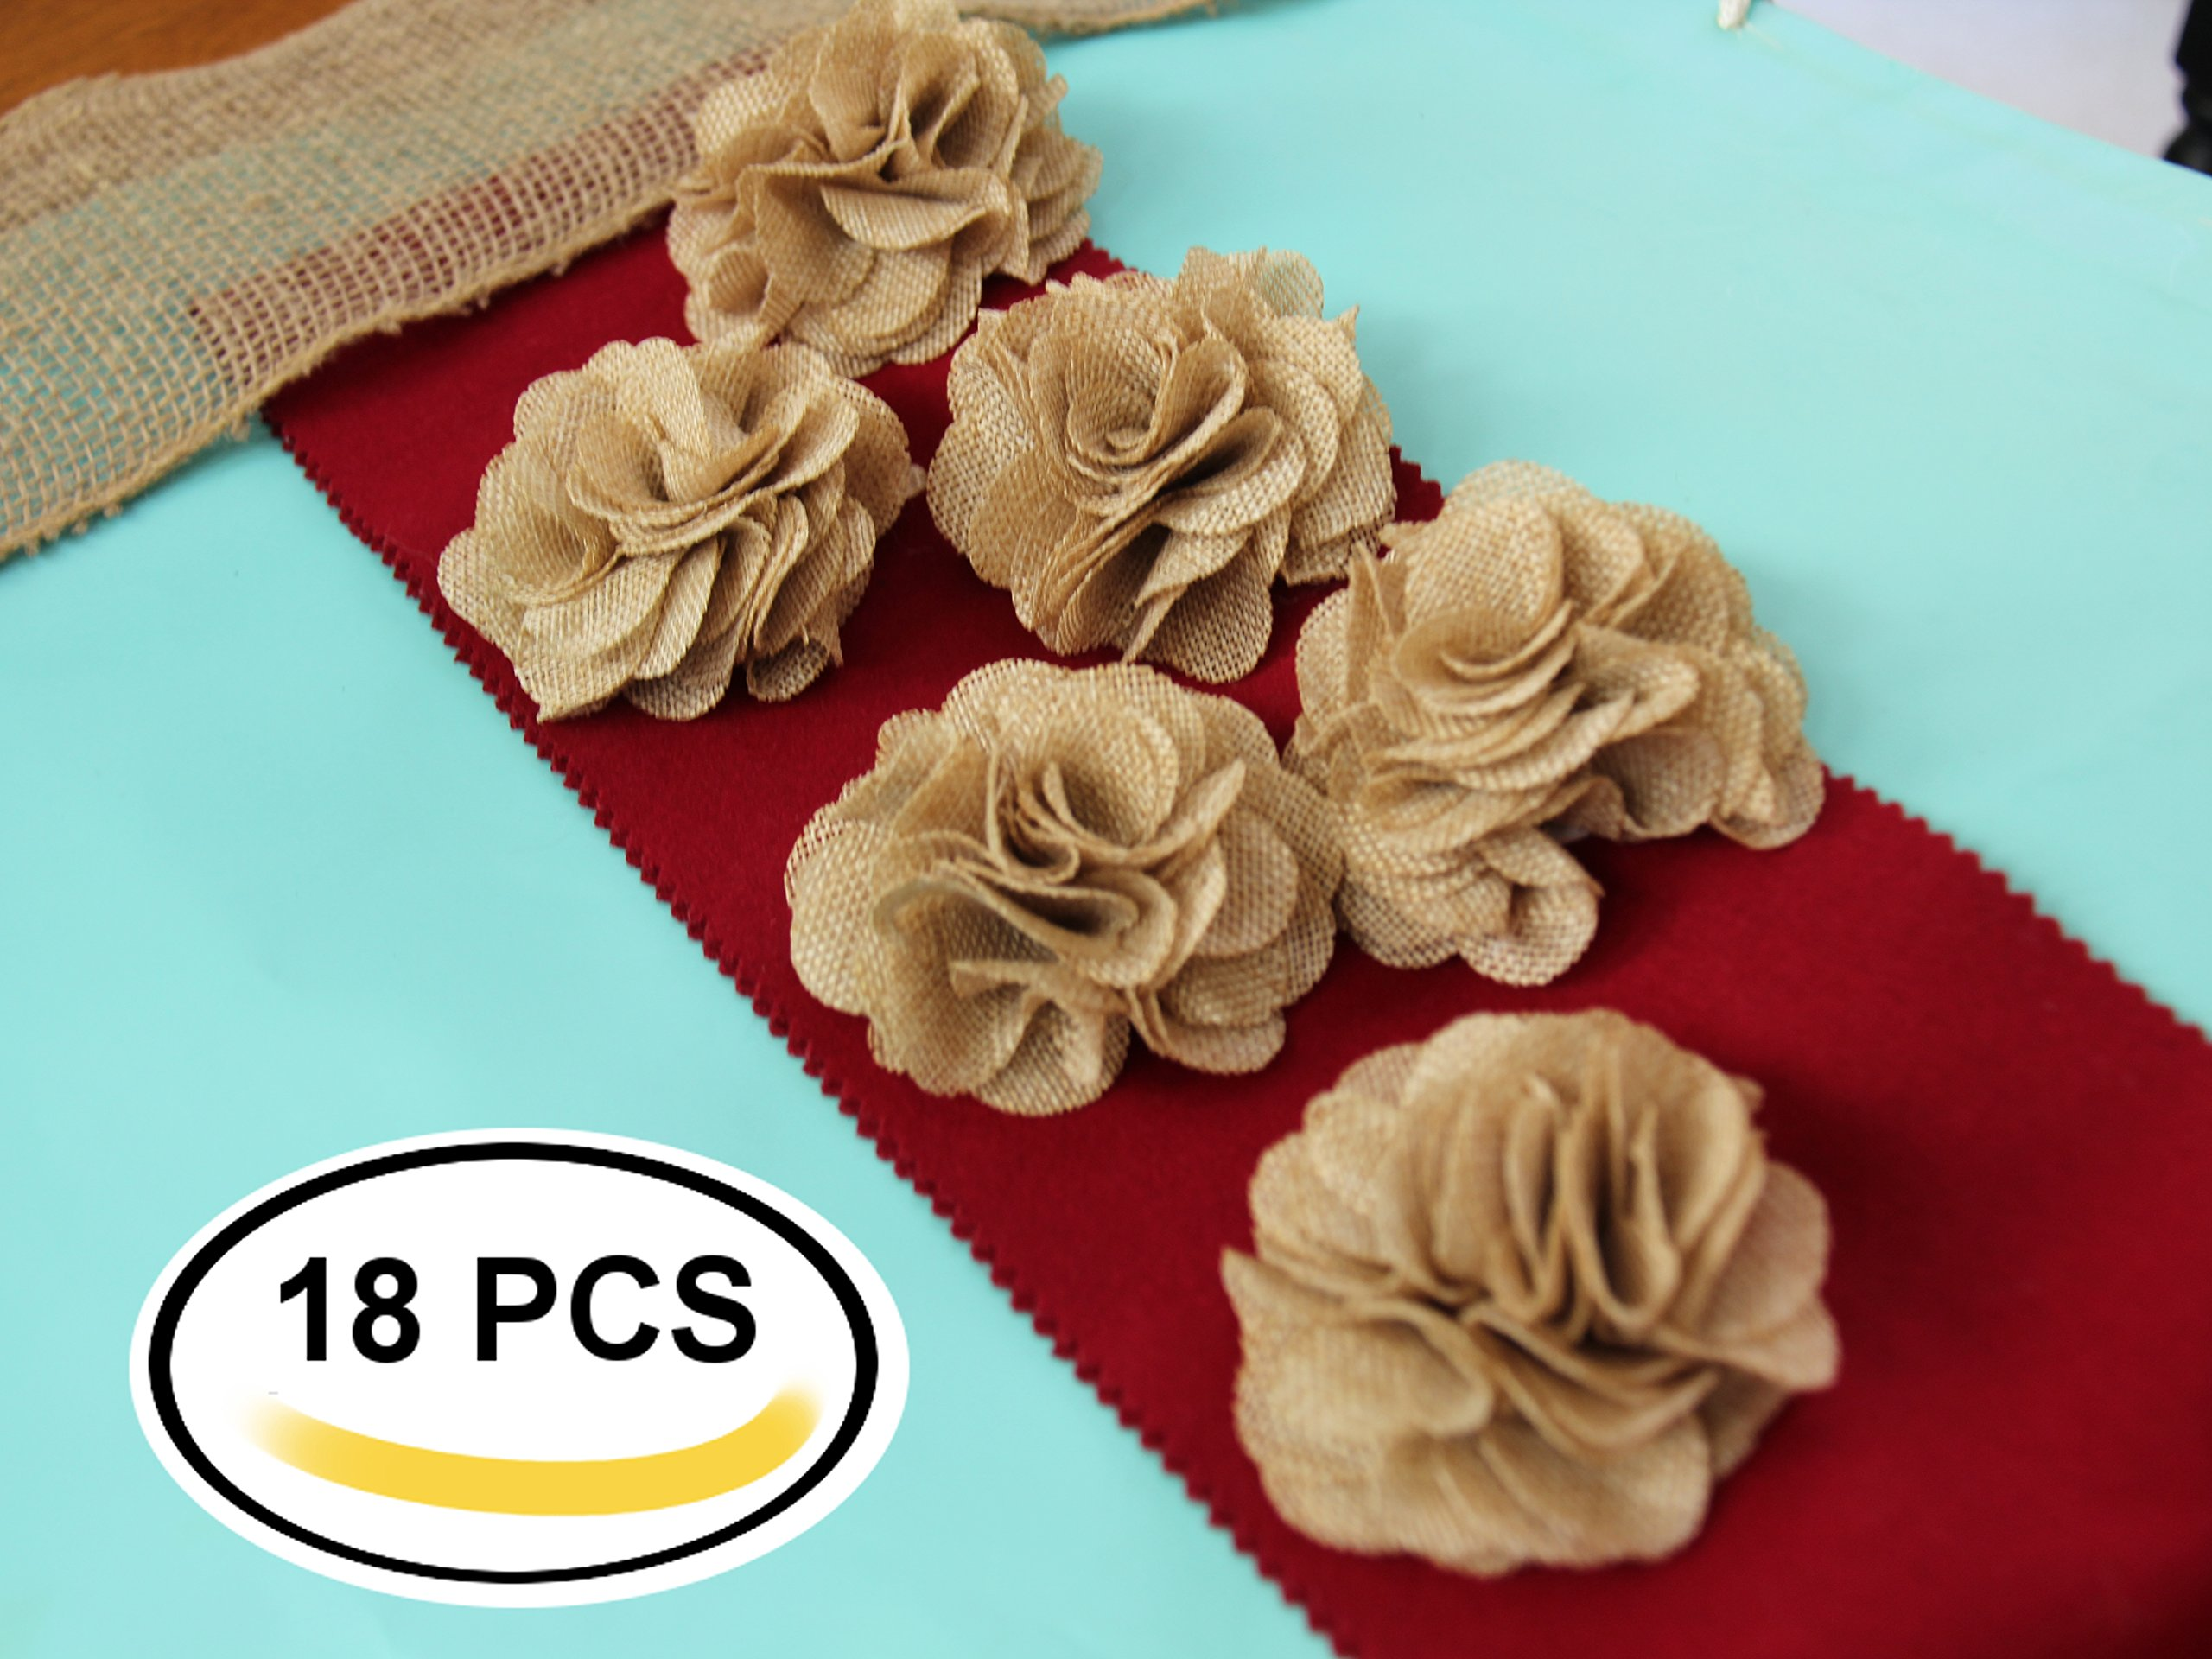 3'' Burlap Rustic Flowers Rose (18 Pcs) Chic,Wedding Decor,Craft Country,Natural!